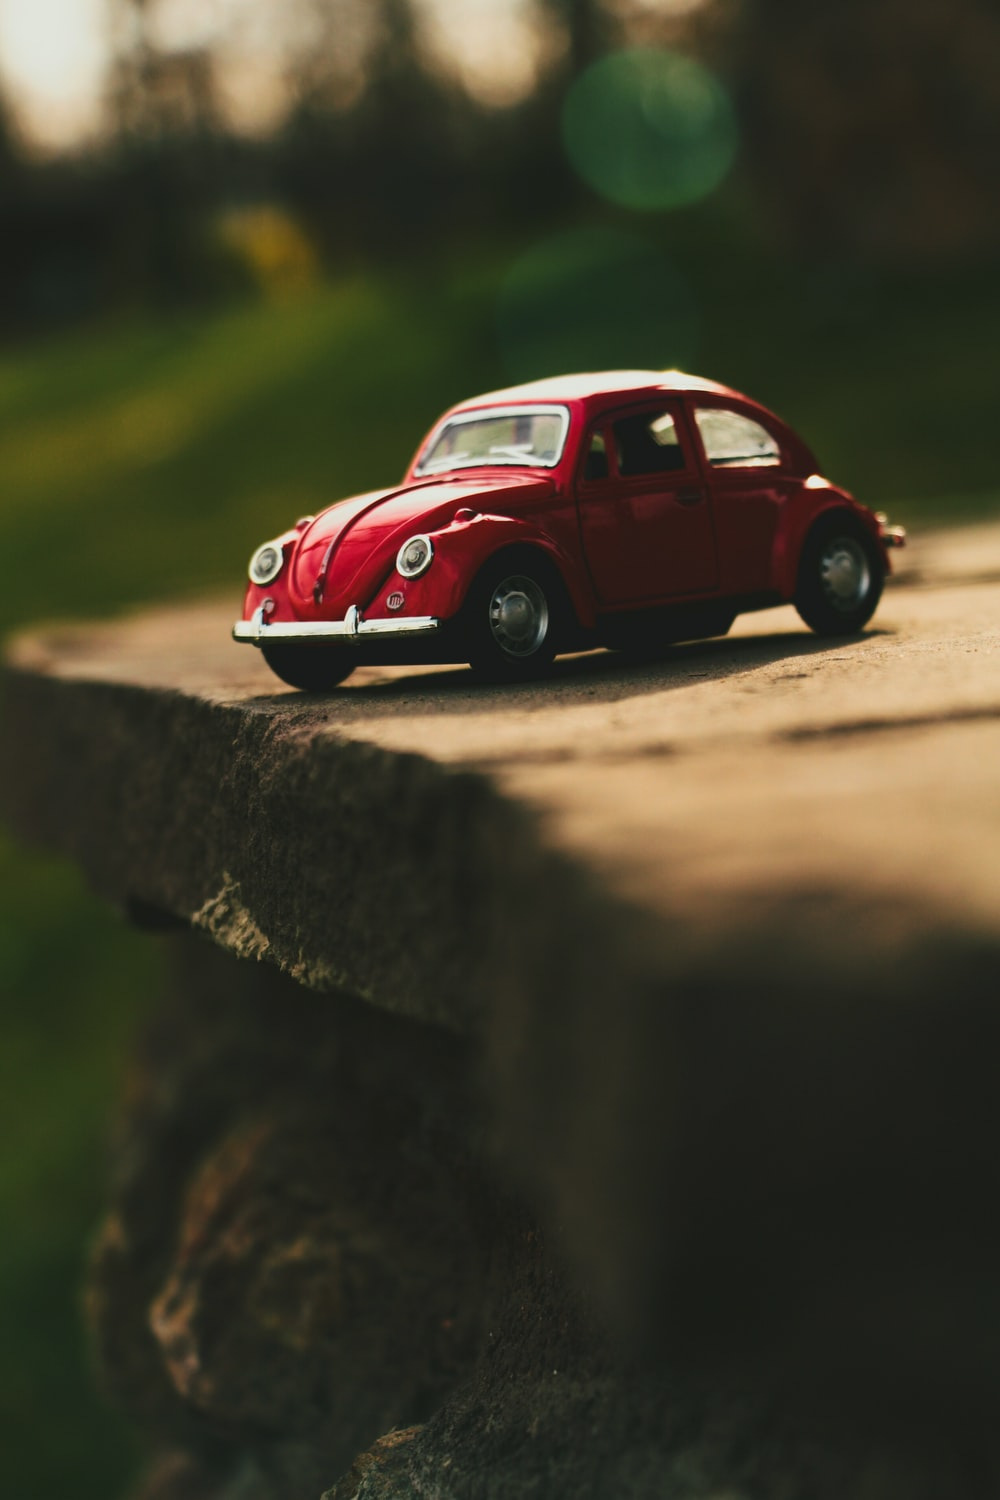 red Volkswagen Beetle scale model on grey concrete board